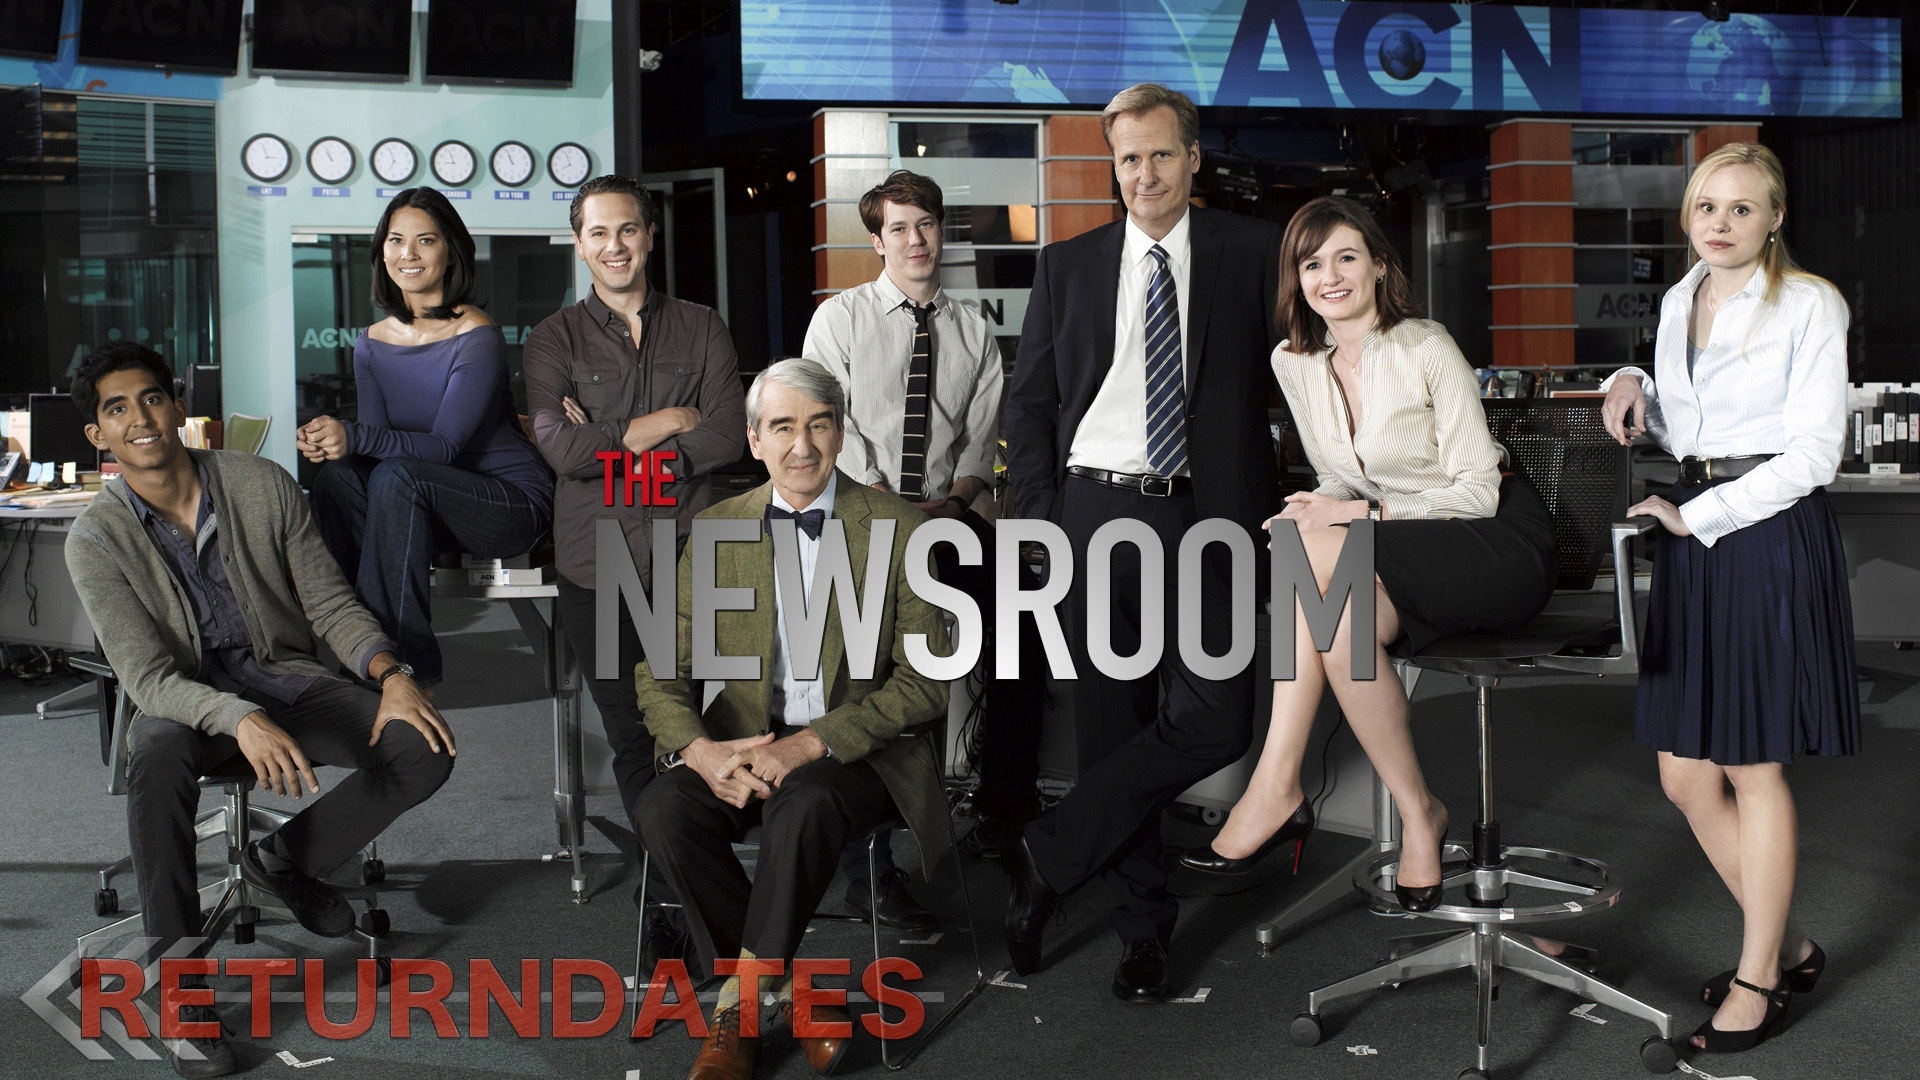 The Newsroom is an American television political drama series created and principally written by Aaron Sorkin that premiered on HBO on June 24, , and concluded on December 14, , consisting of 25 episodes over three seasons, with 52 to 73 minute long episodes.